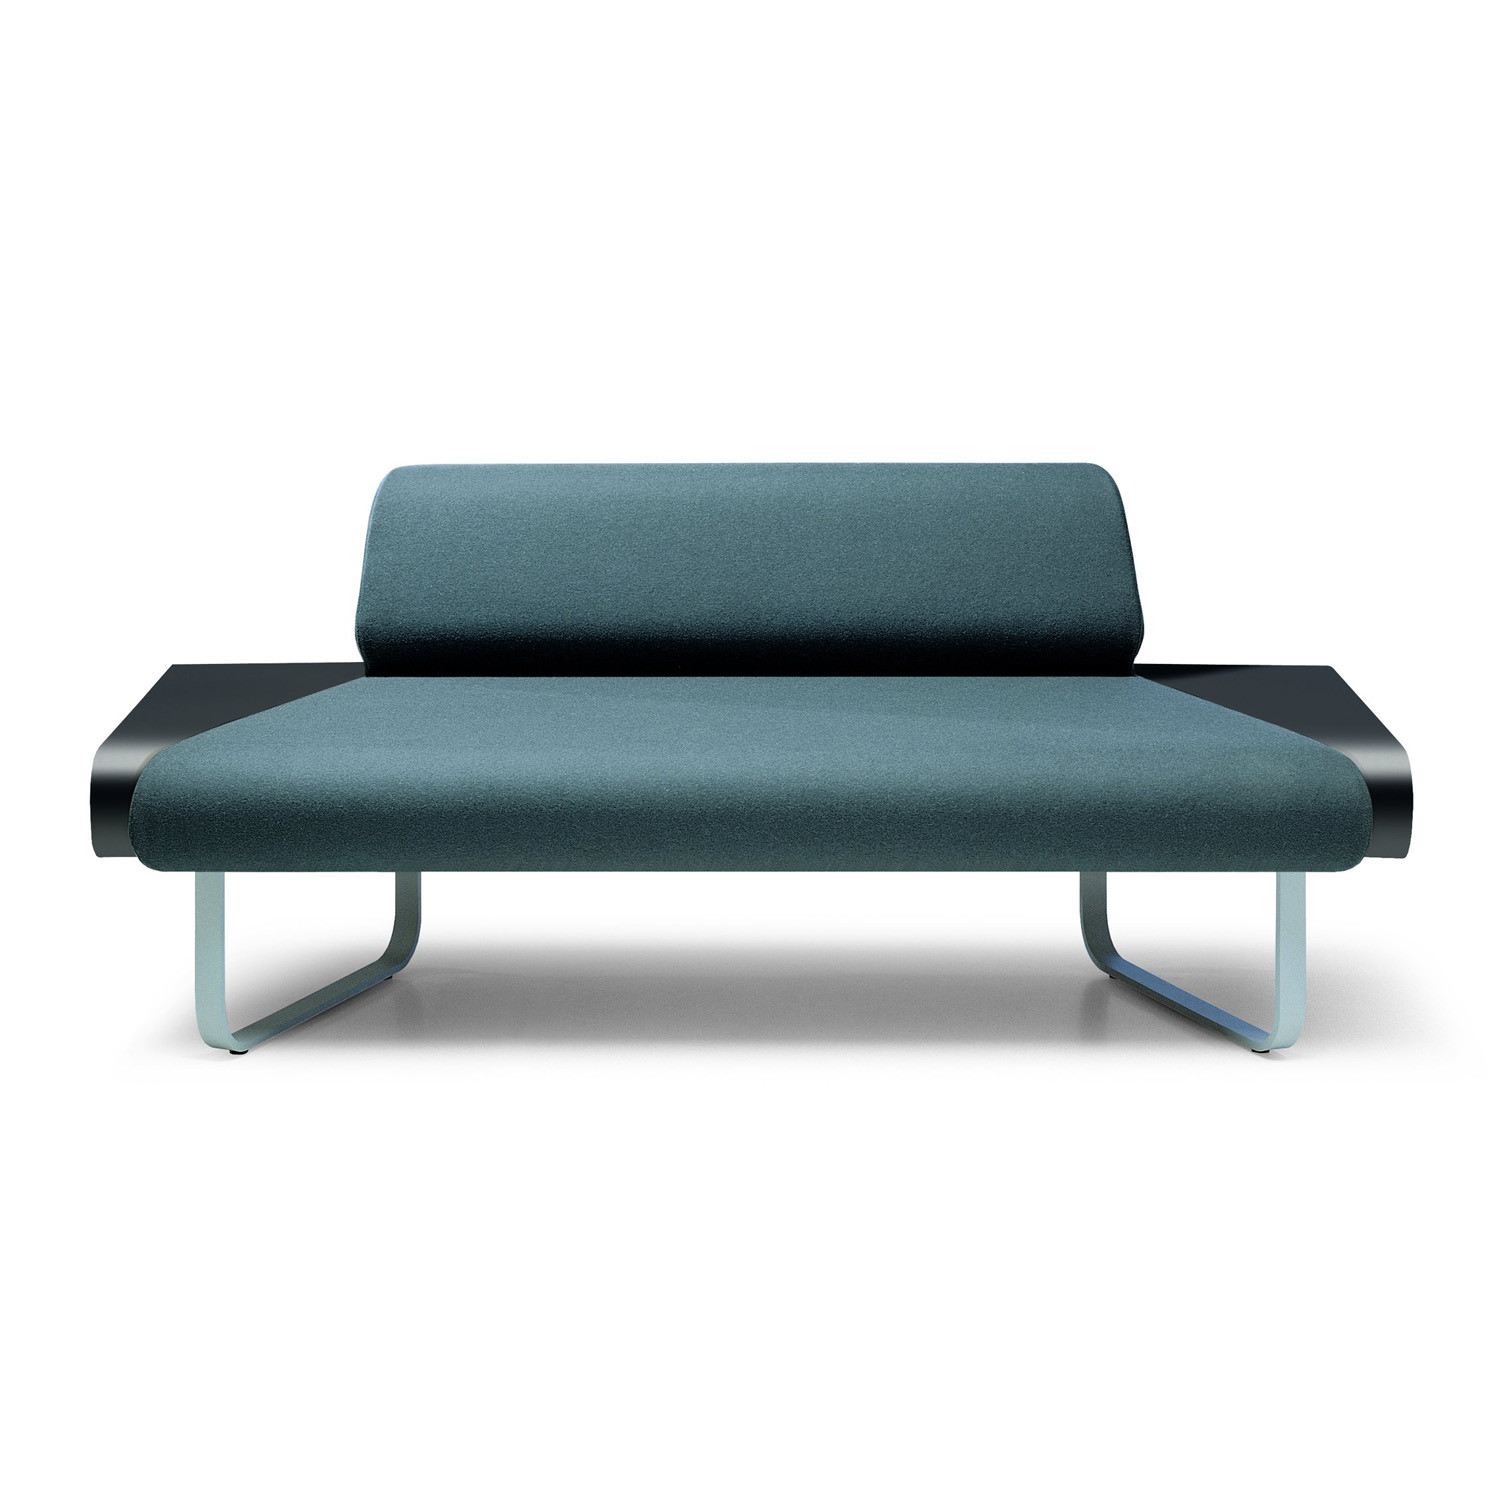 Yuku Sofa from Apres